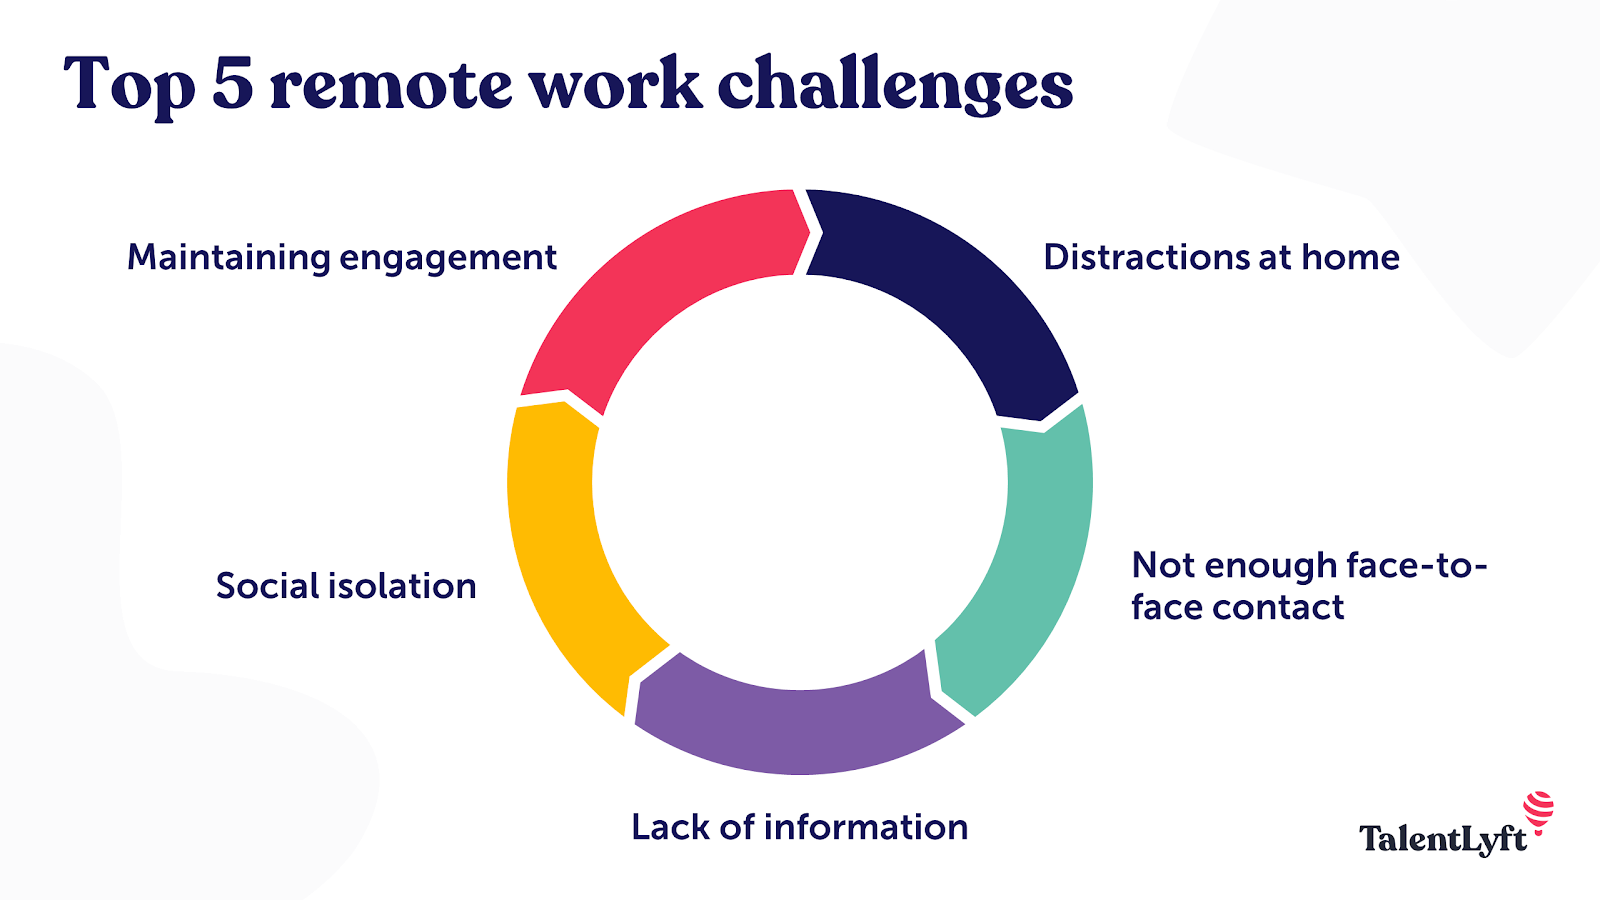 Remote work challenges for employees